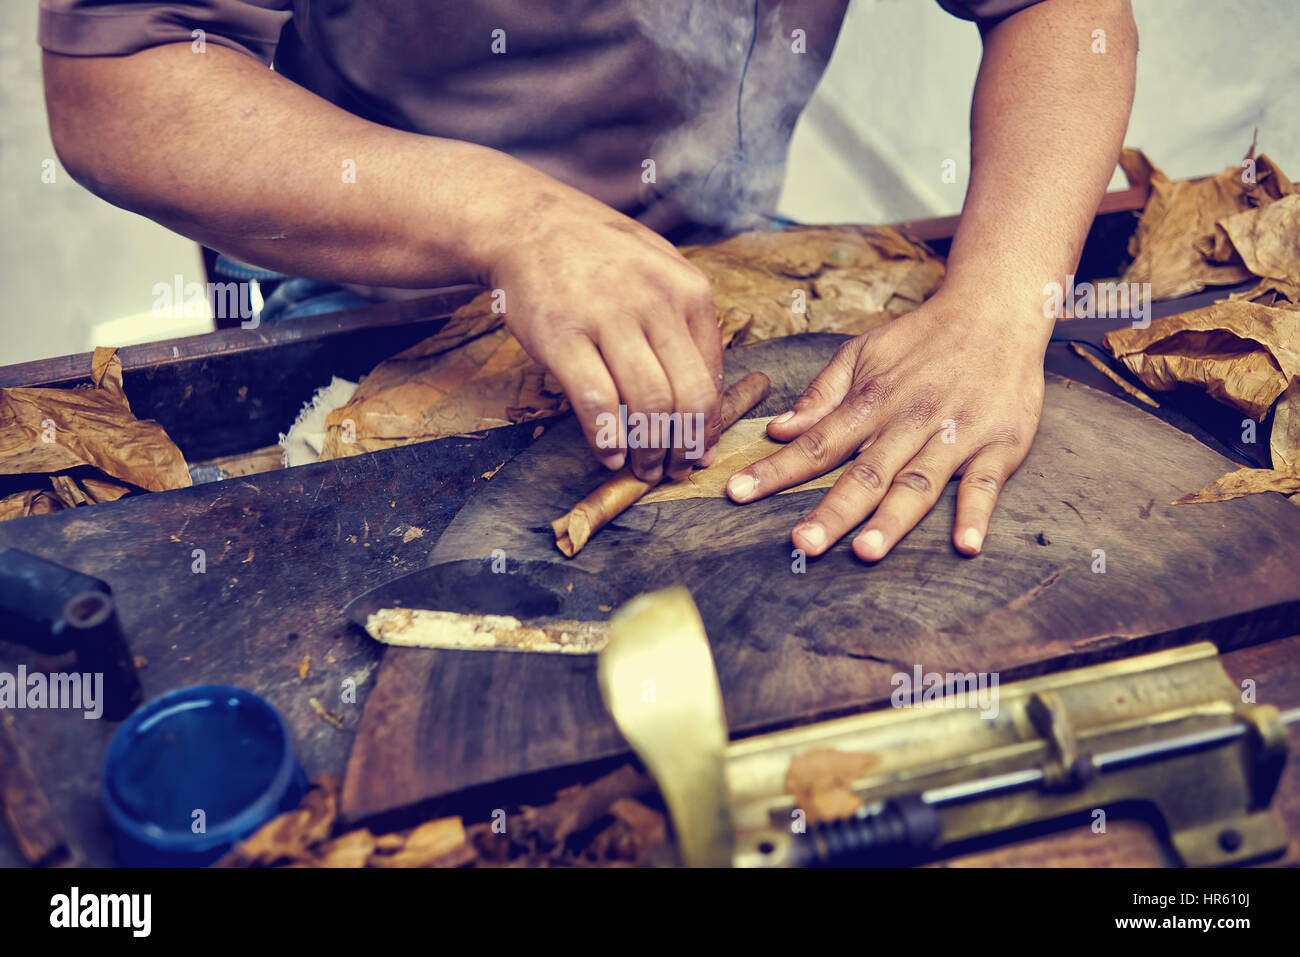 Closeup of hands making cigar from tobacco leaves. Traditional manufacture of cigars. Dominican Republic - Stock Image